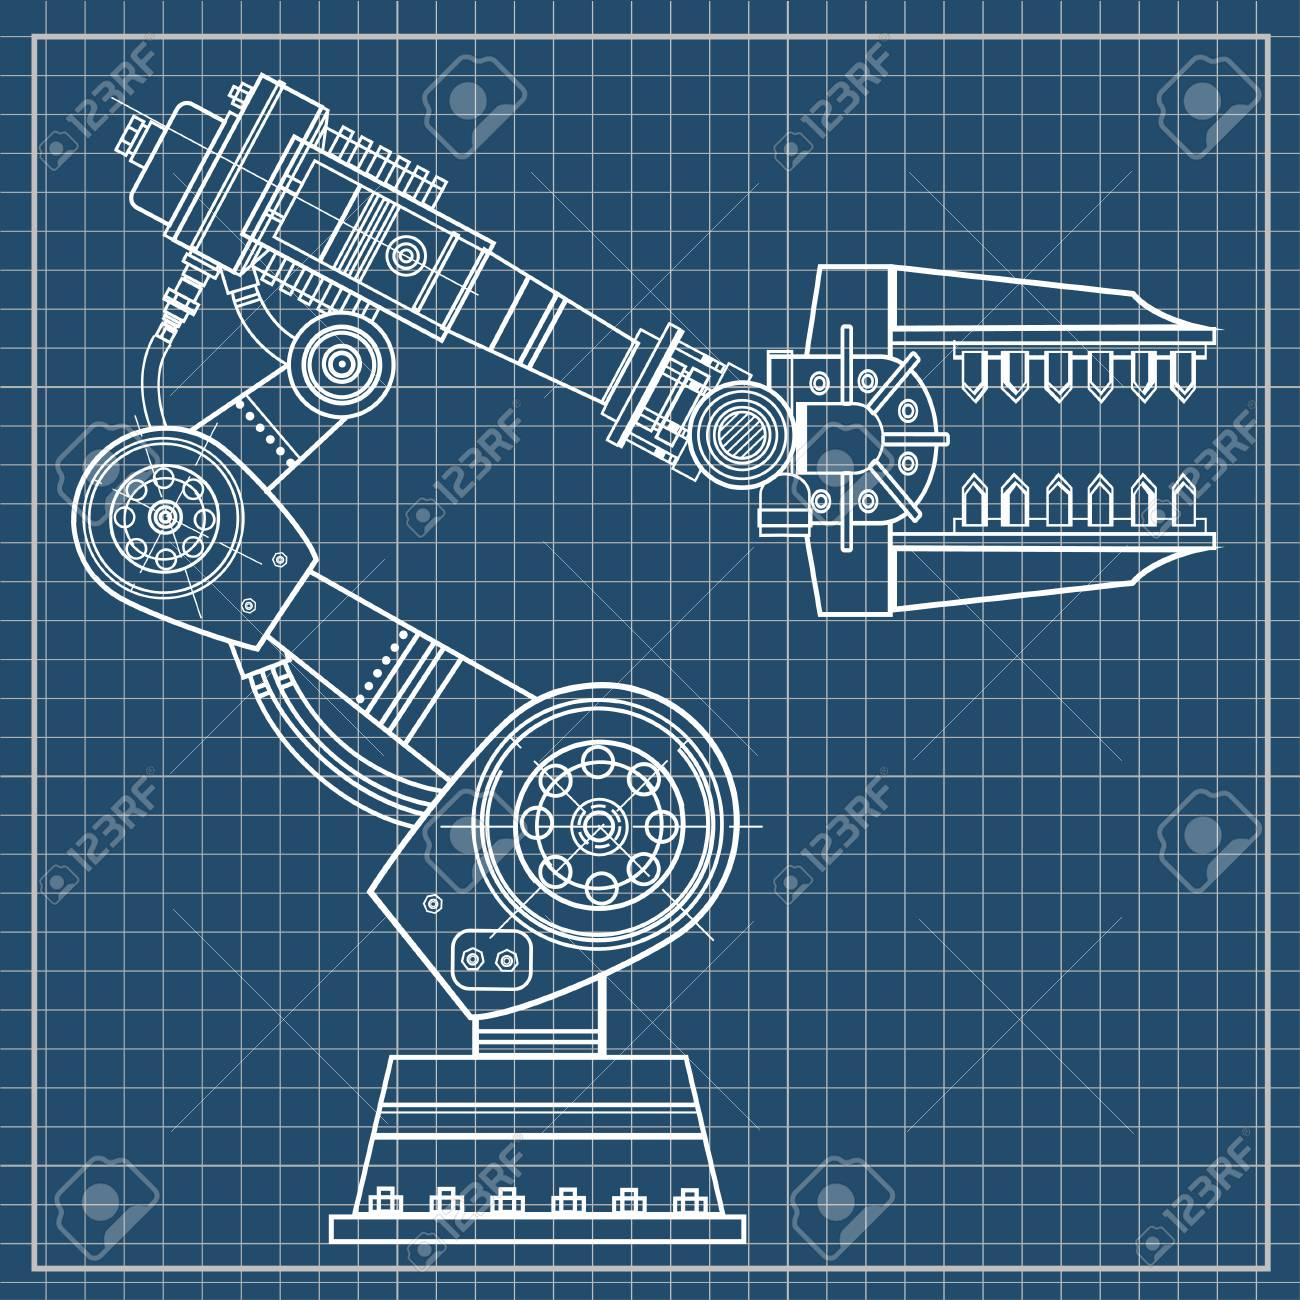 Industrial robot hand vector image on the isolated blueprint industrial robot hand vector image on the isolated blueprint background stock vector 97960490 malvernweather Choice Image